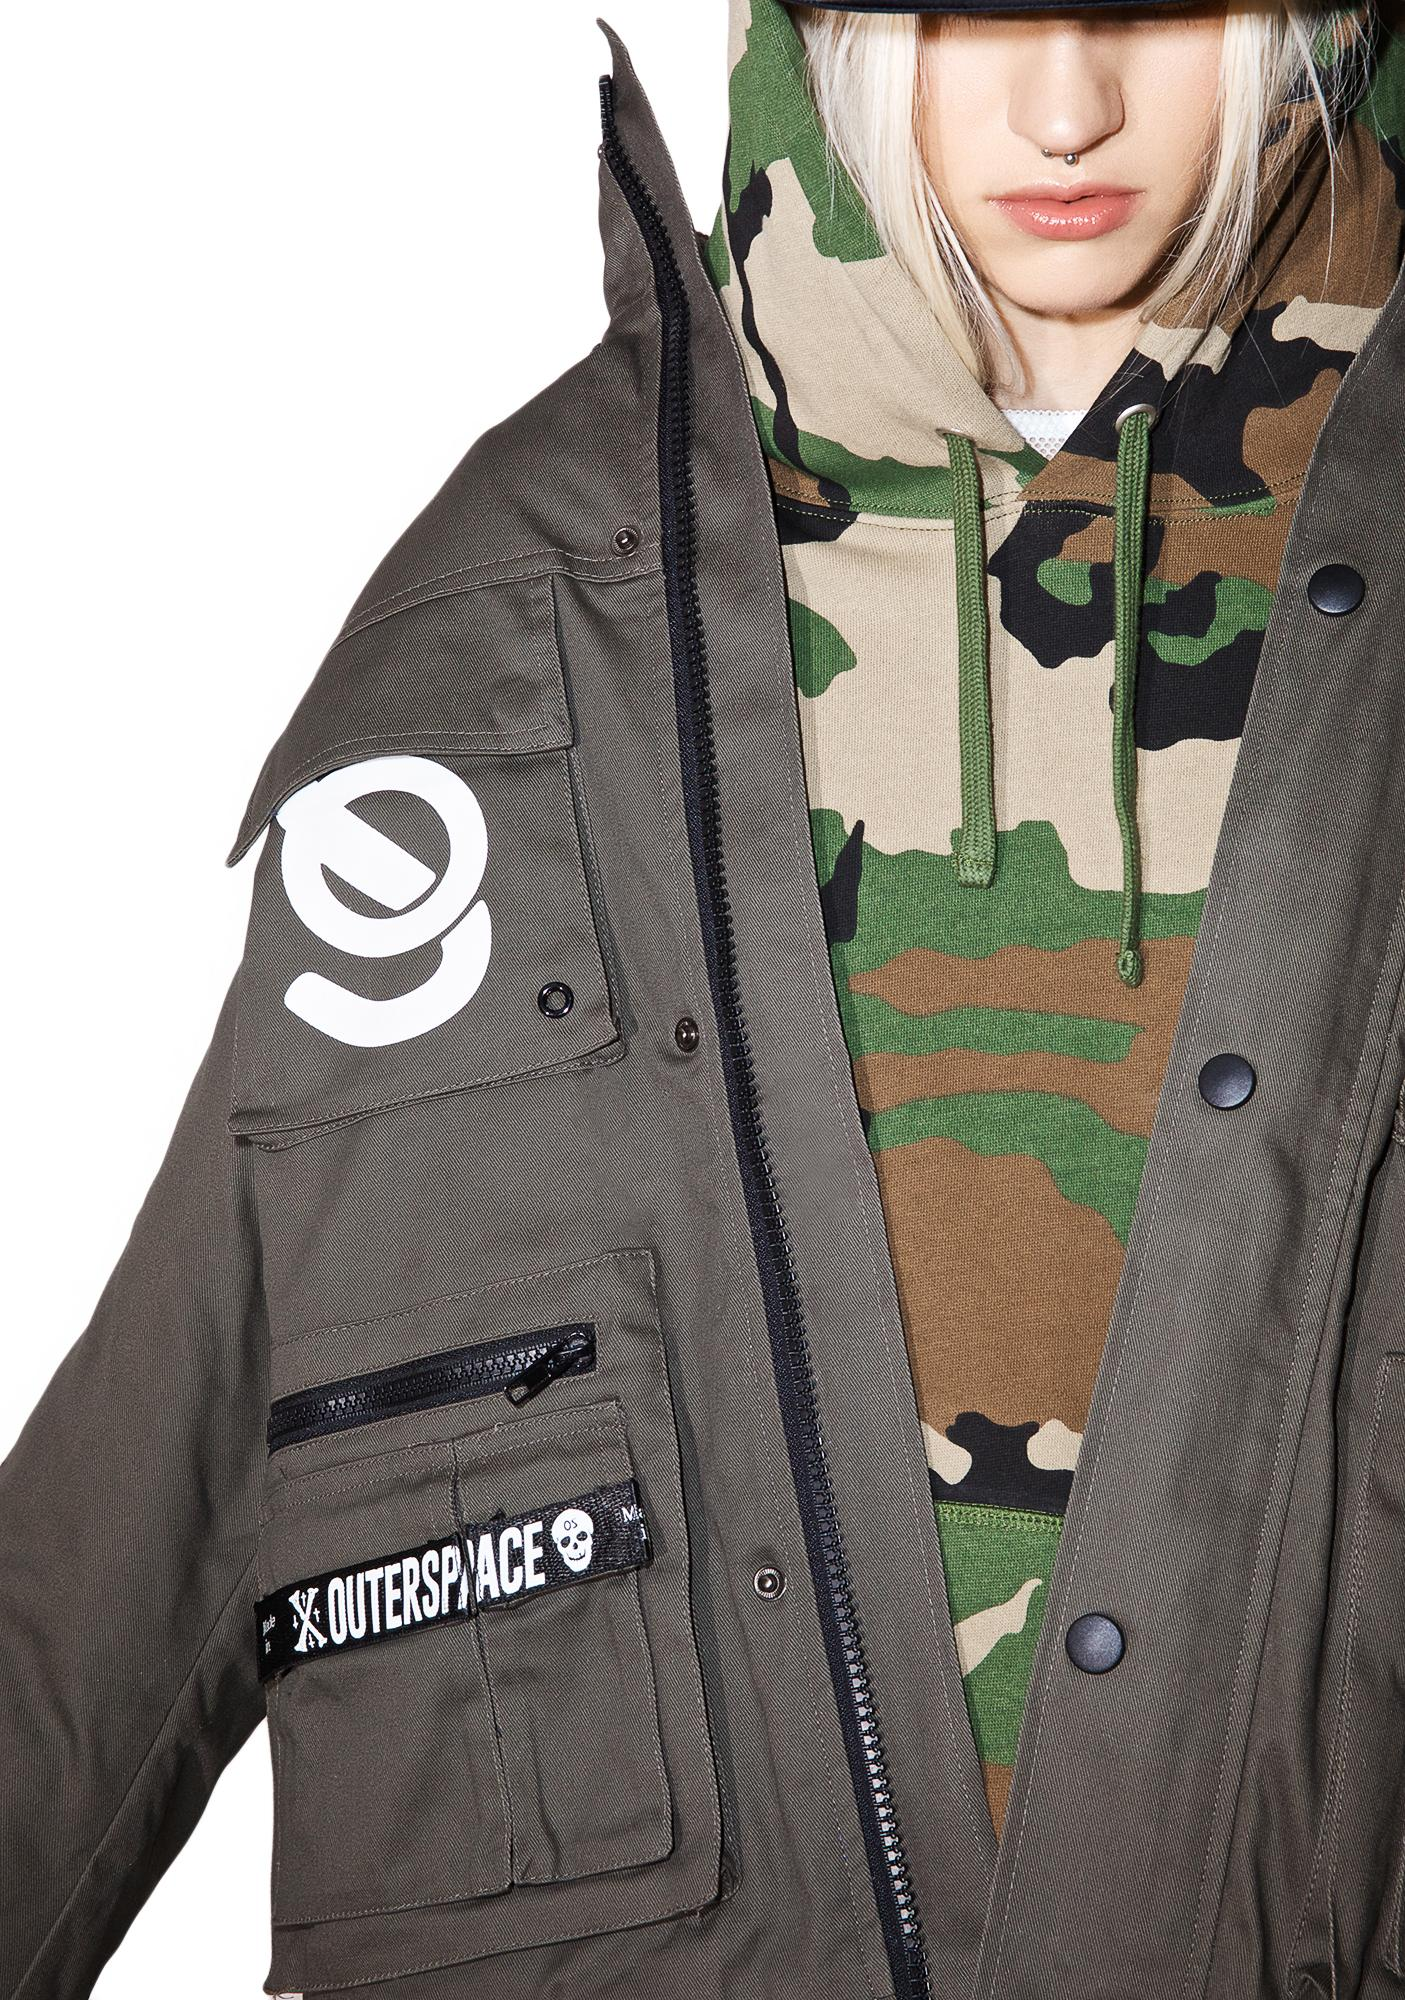 Outerspace OS Army Military Jacket